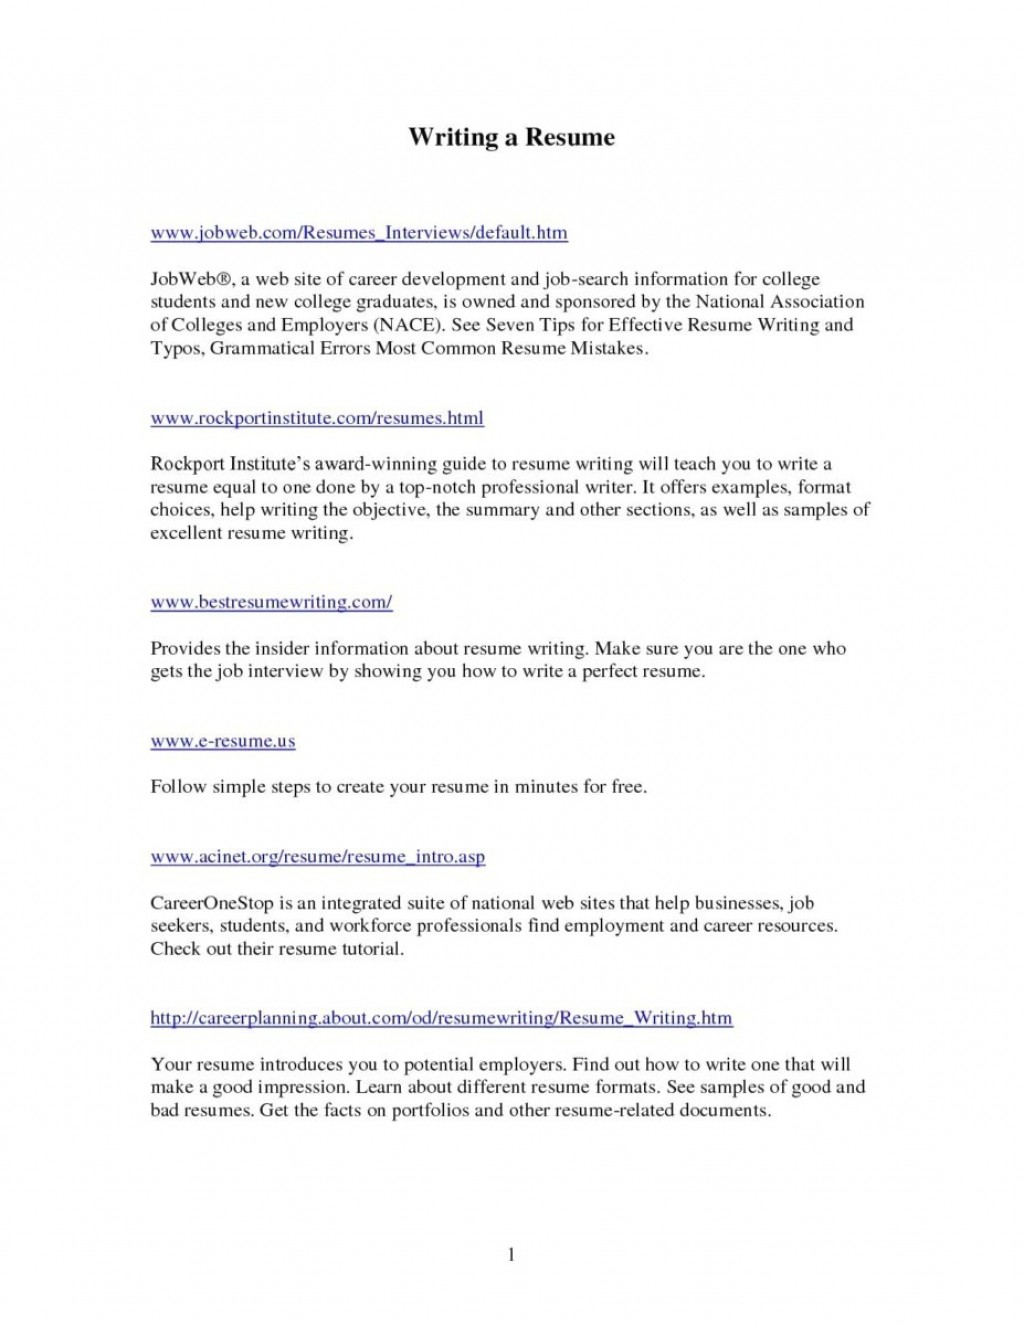 009 Research Paper Resume Writing Service Reviews Format Best Writers Inspirational Help Professional Of Free Services Essay Remarkable Outline Sample On A Person Apa Style Mla Argumentative Large